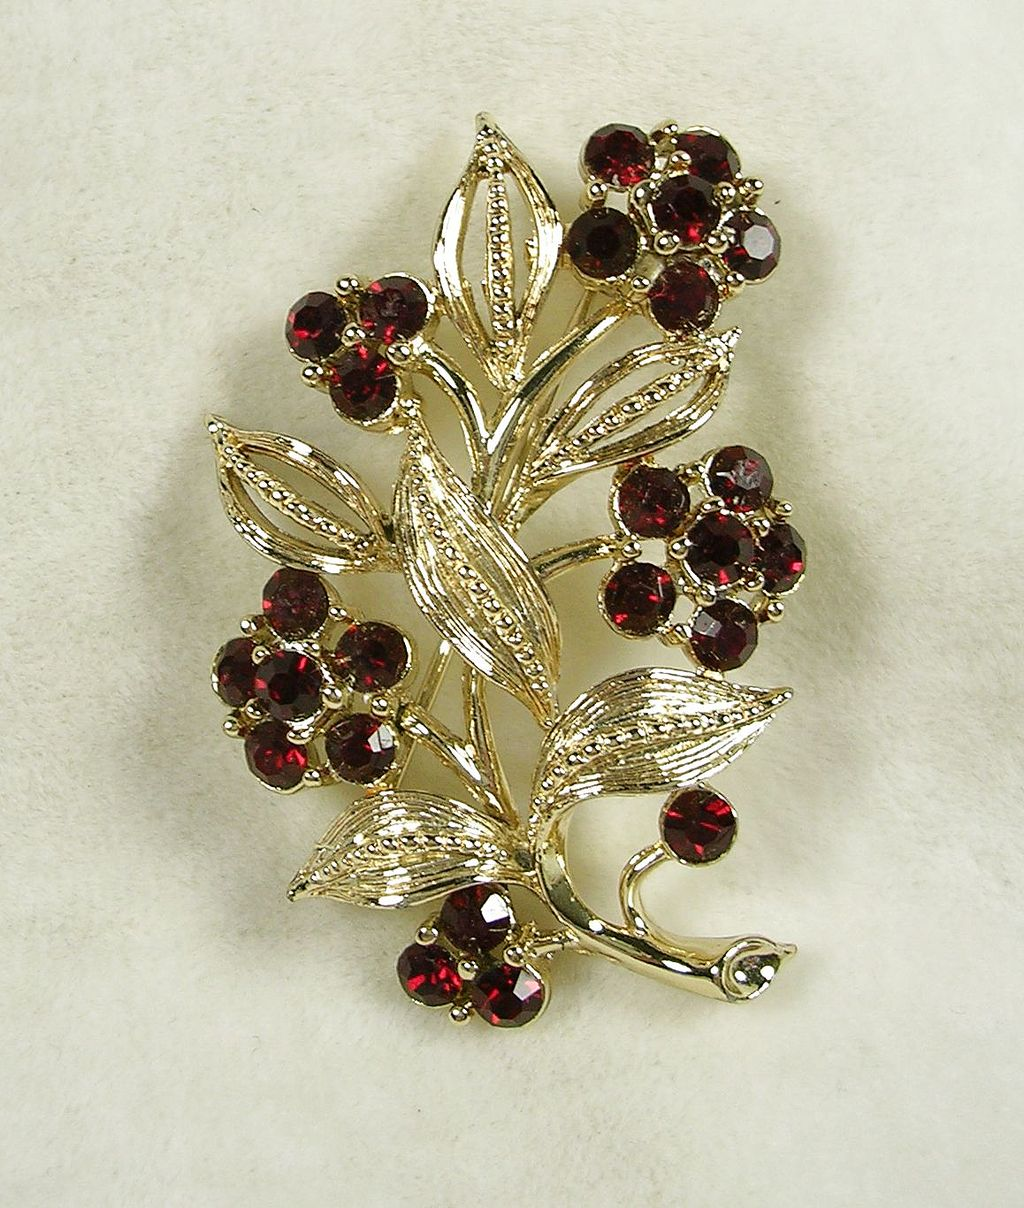 Signed Lisner Floral Brooch Pin with Garnet Rhinestones in Gold  Tone -  Beautiful